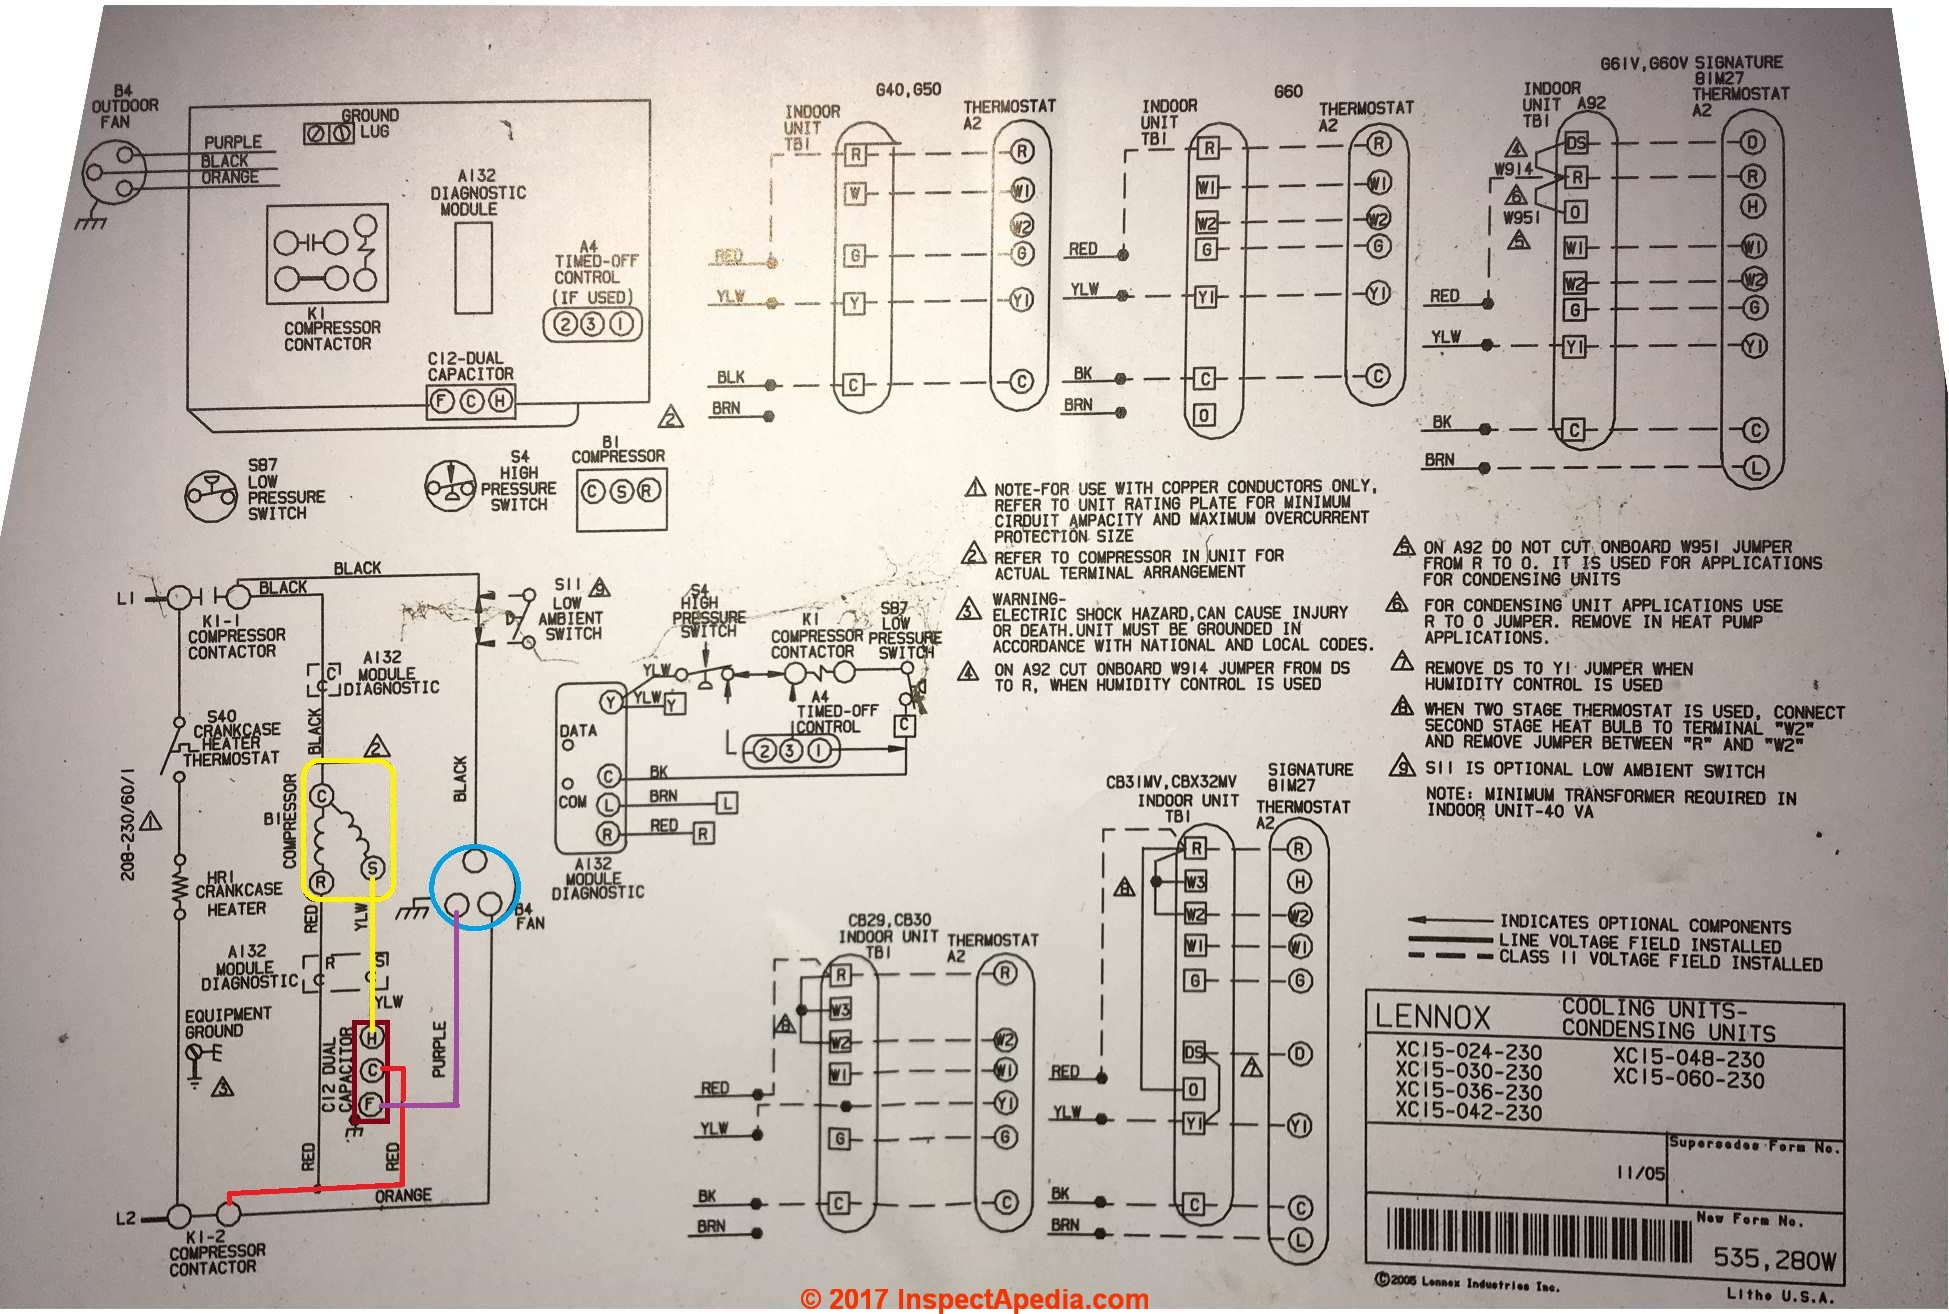 hight resolution of lennox xc15 condenser unit wiring diagram c inspectapedia com showing capacitor connections